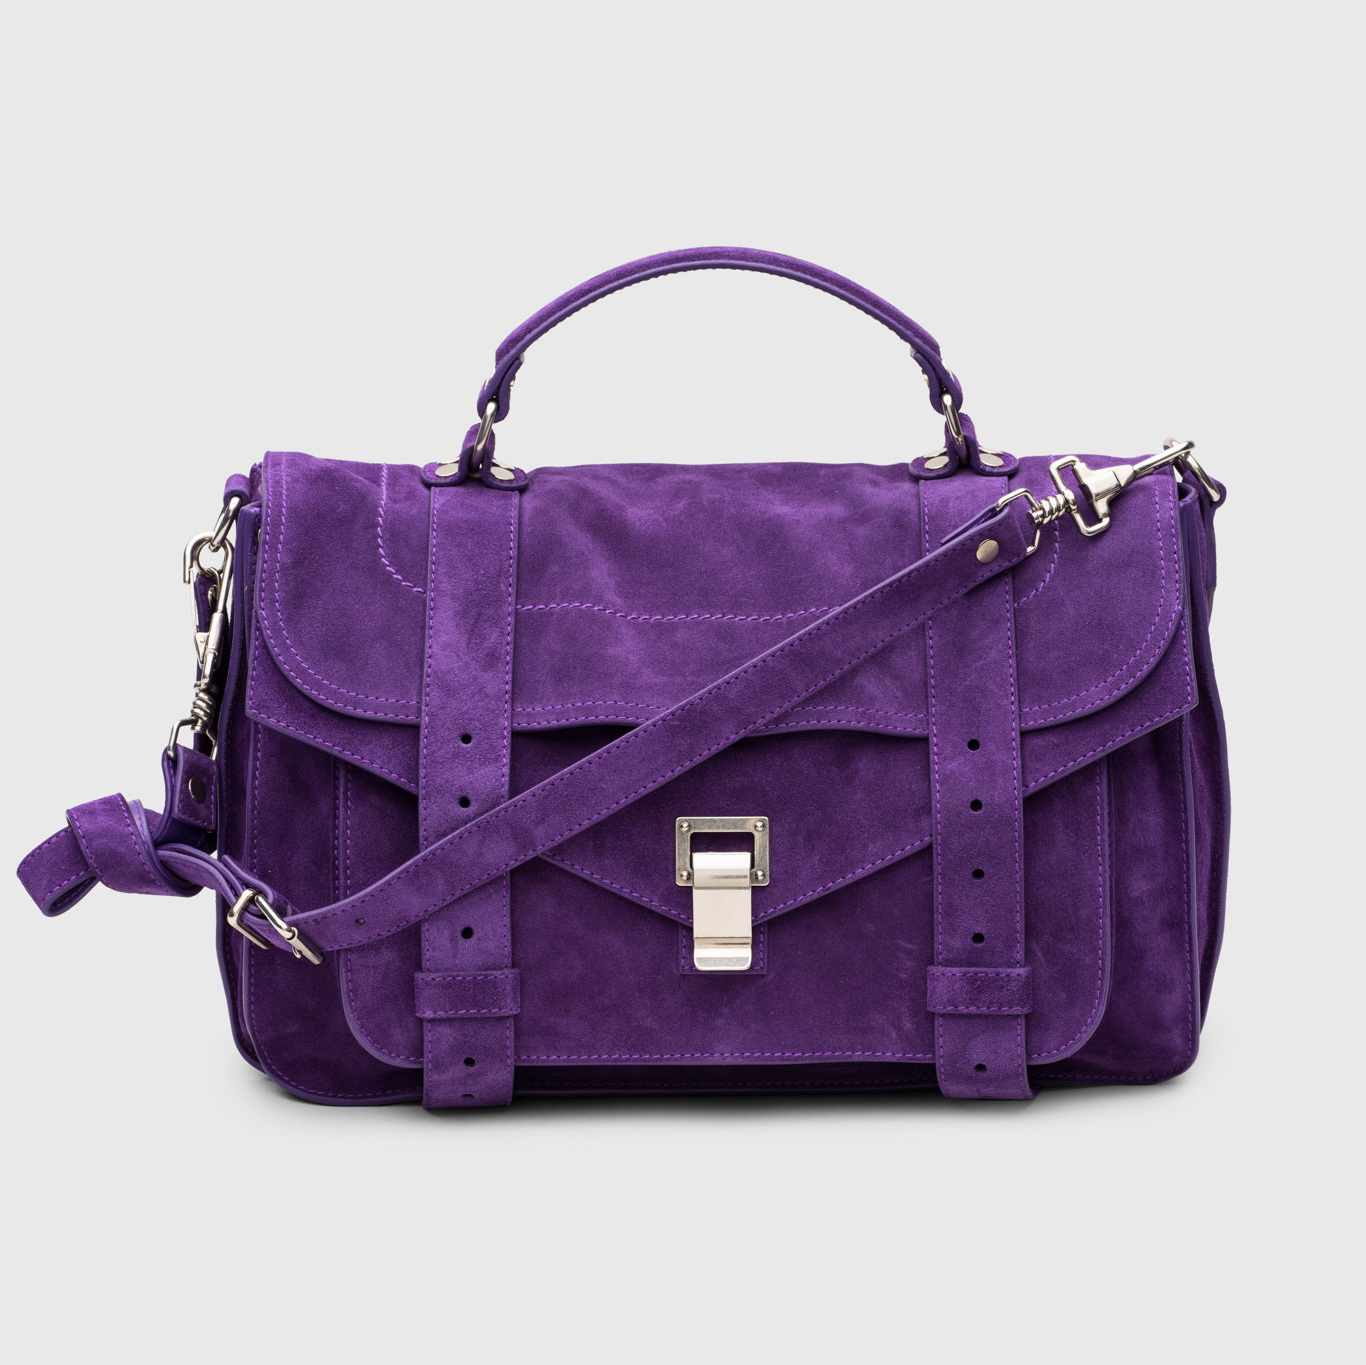 Proenza Schouler Satchel | Ps1 Mini | Ps1 Bag